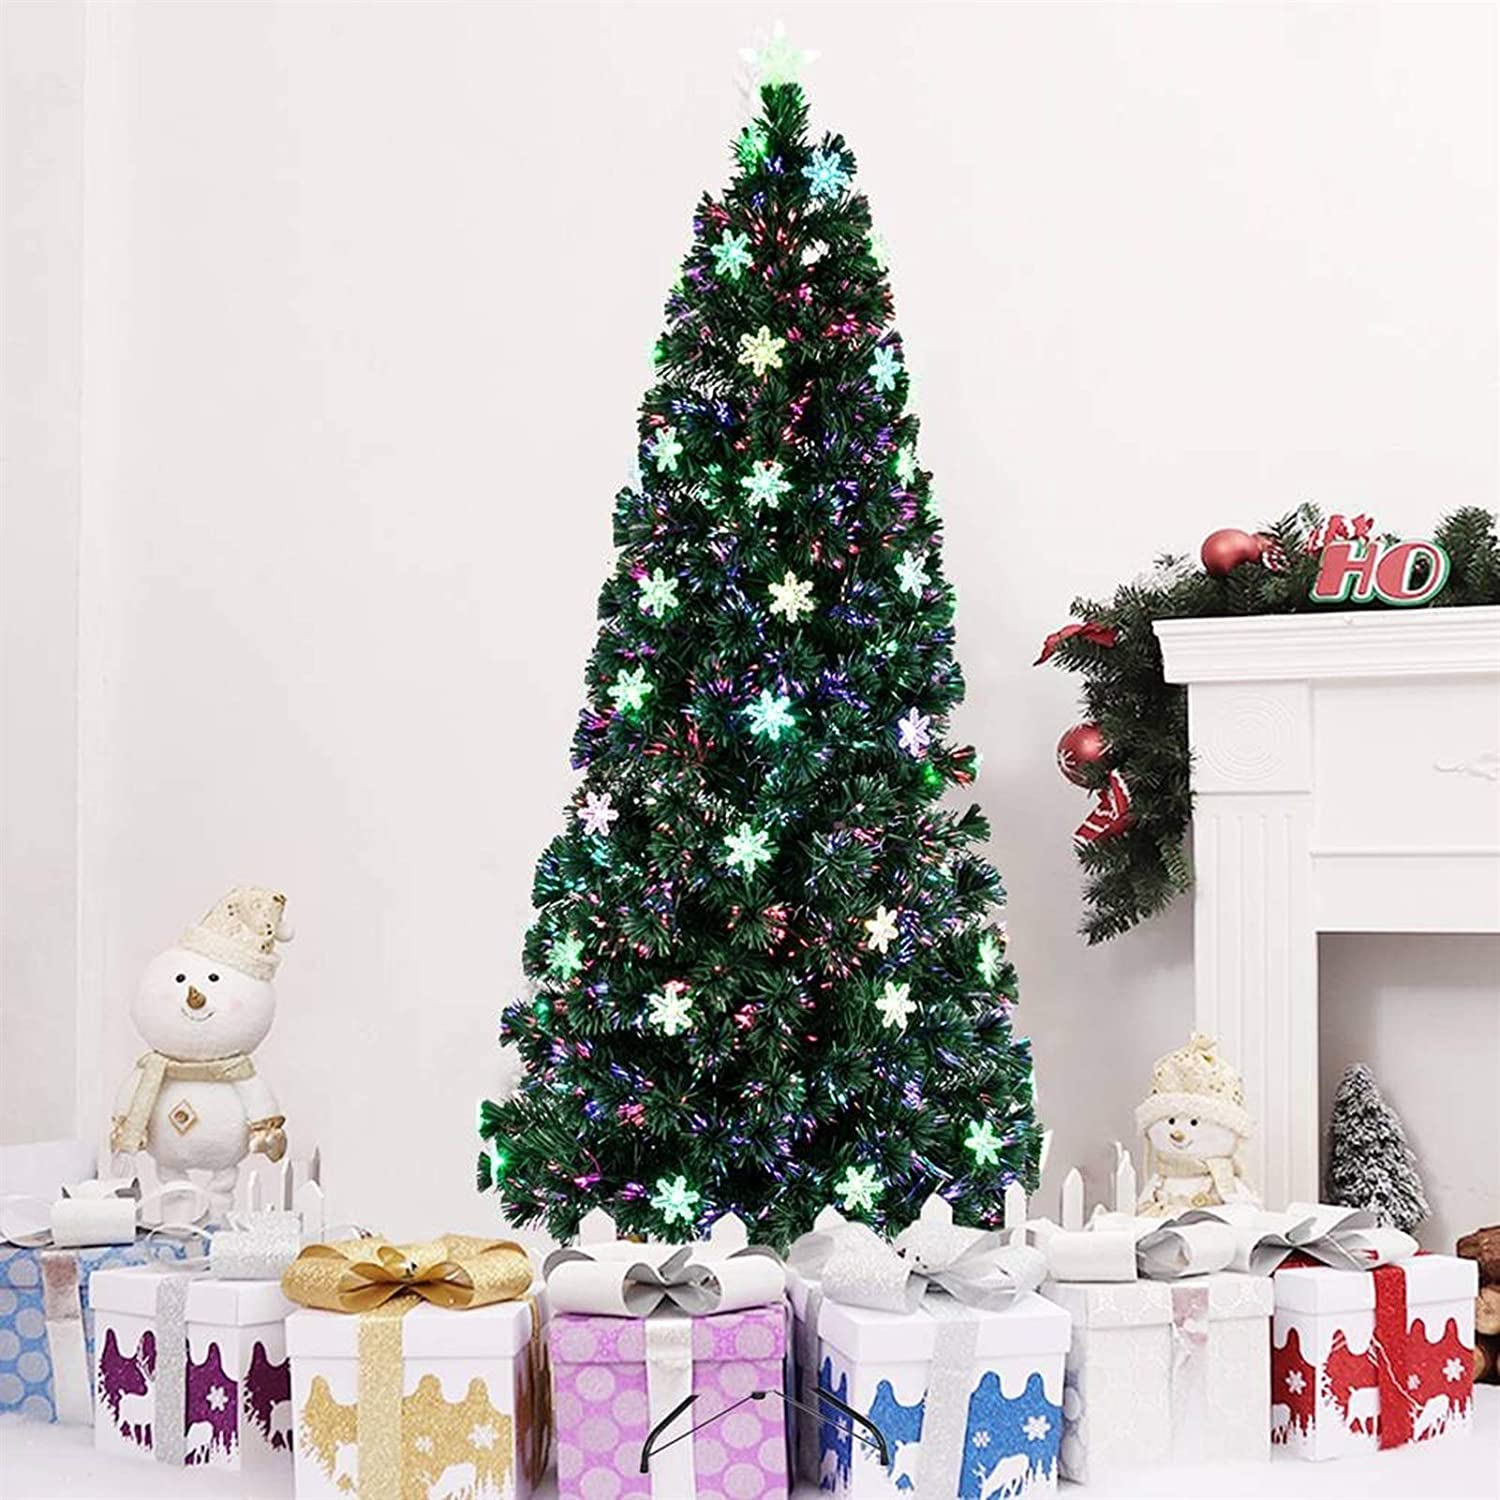 6ft Artificial Christmas Tree with Lights Ranking TOP8 Ornaments Woodland unisex and